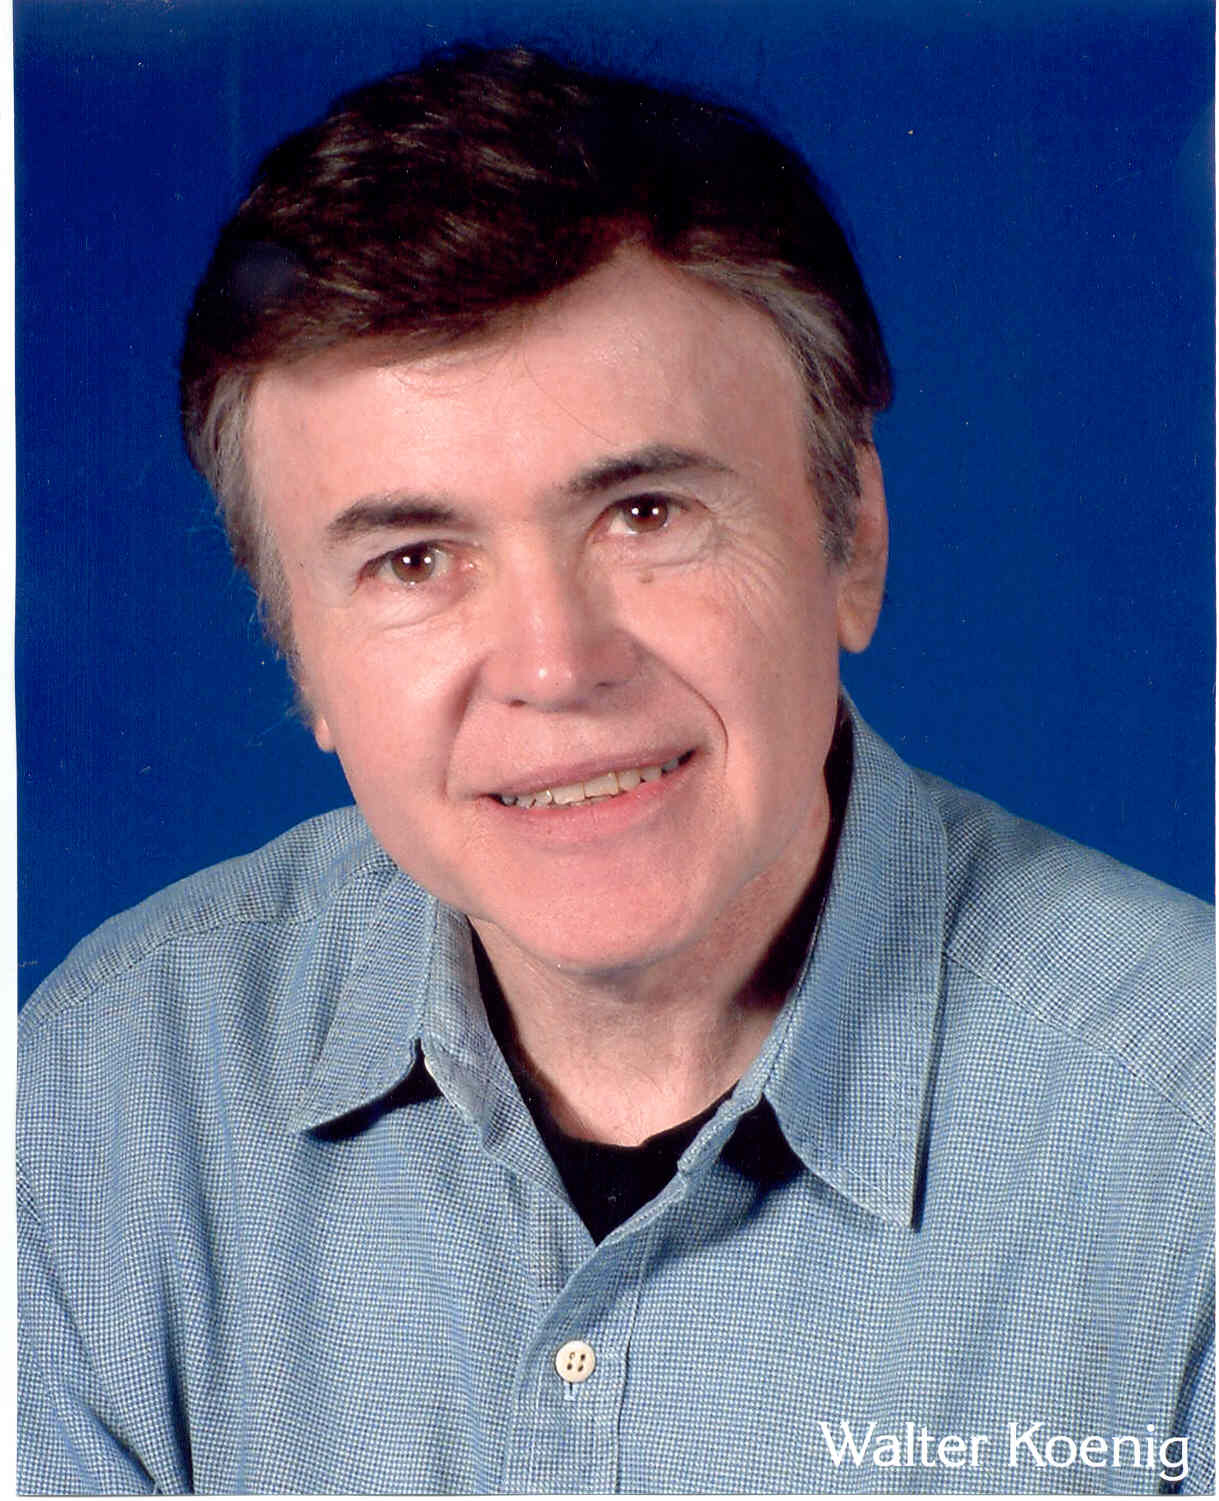 walter koenig interview